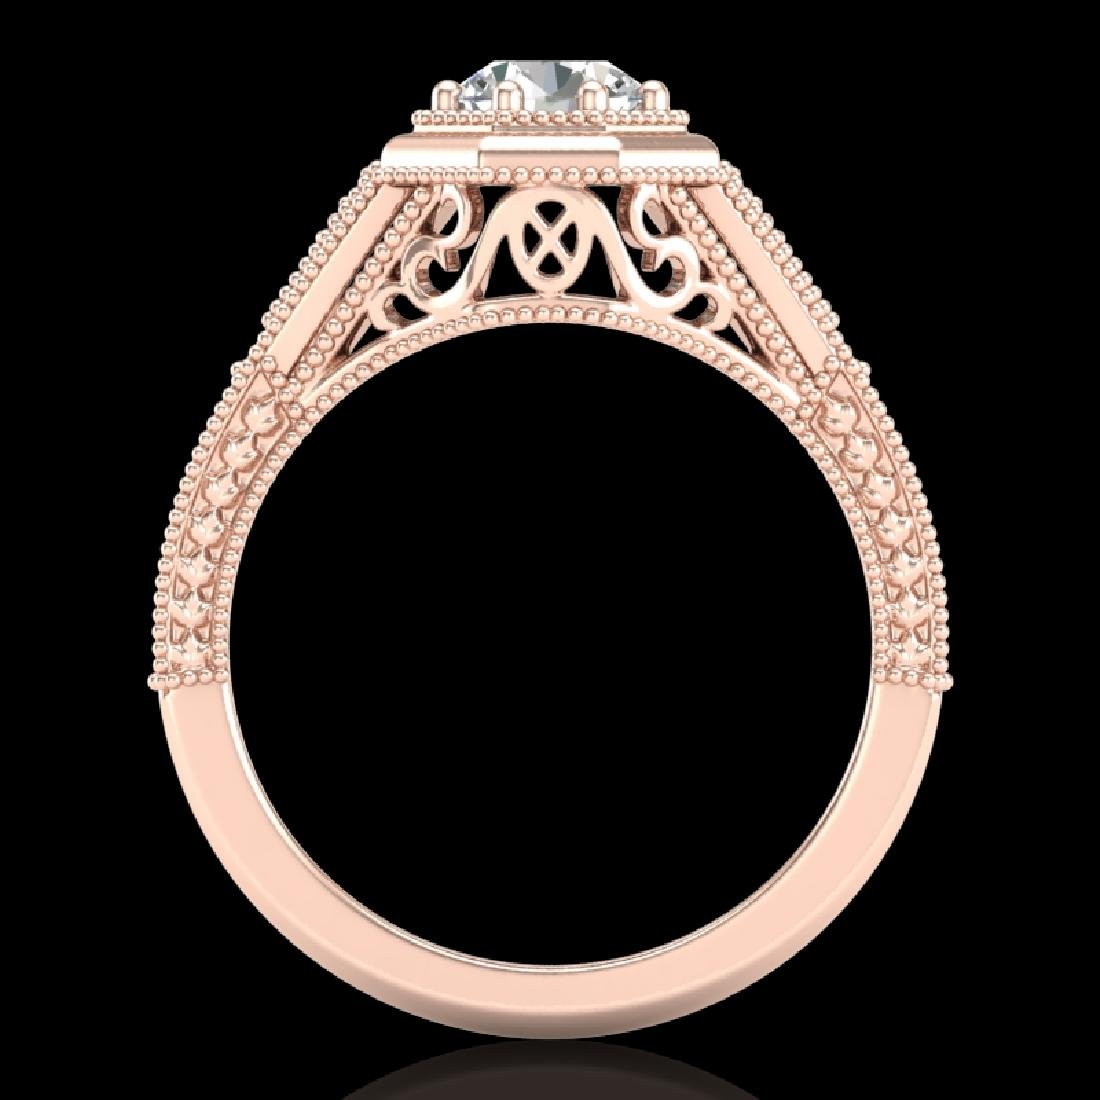 0.84 CTW VS/SI Diamond Solitaire Art Deco Ring 18K Rose